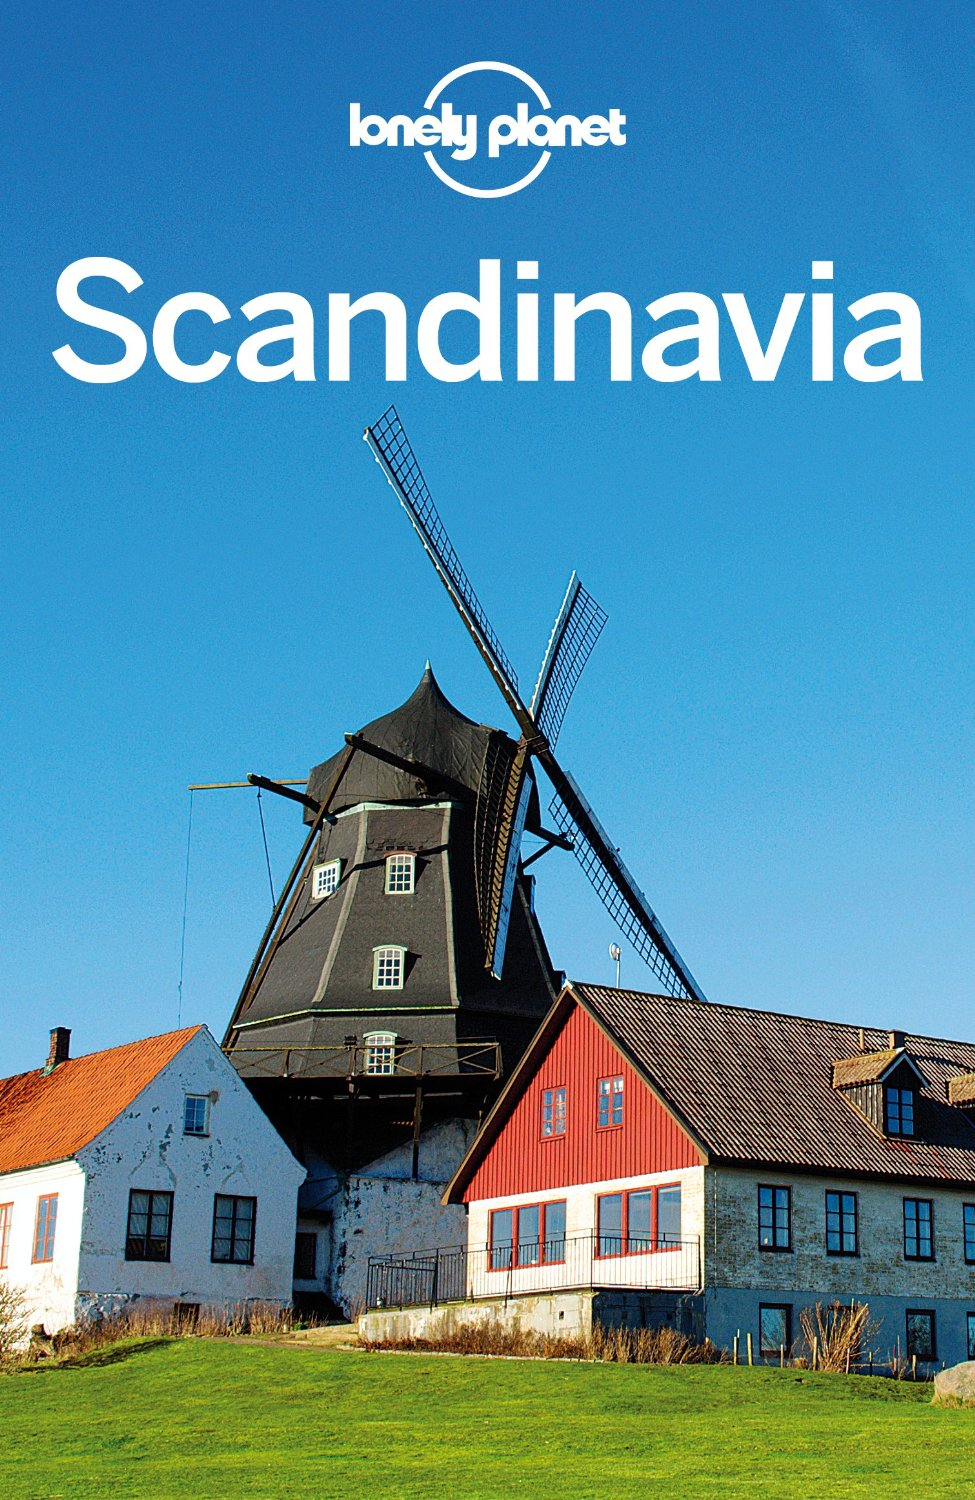 Lonely Planet Scandinavia (Travel Guide) free download